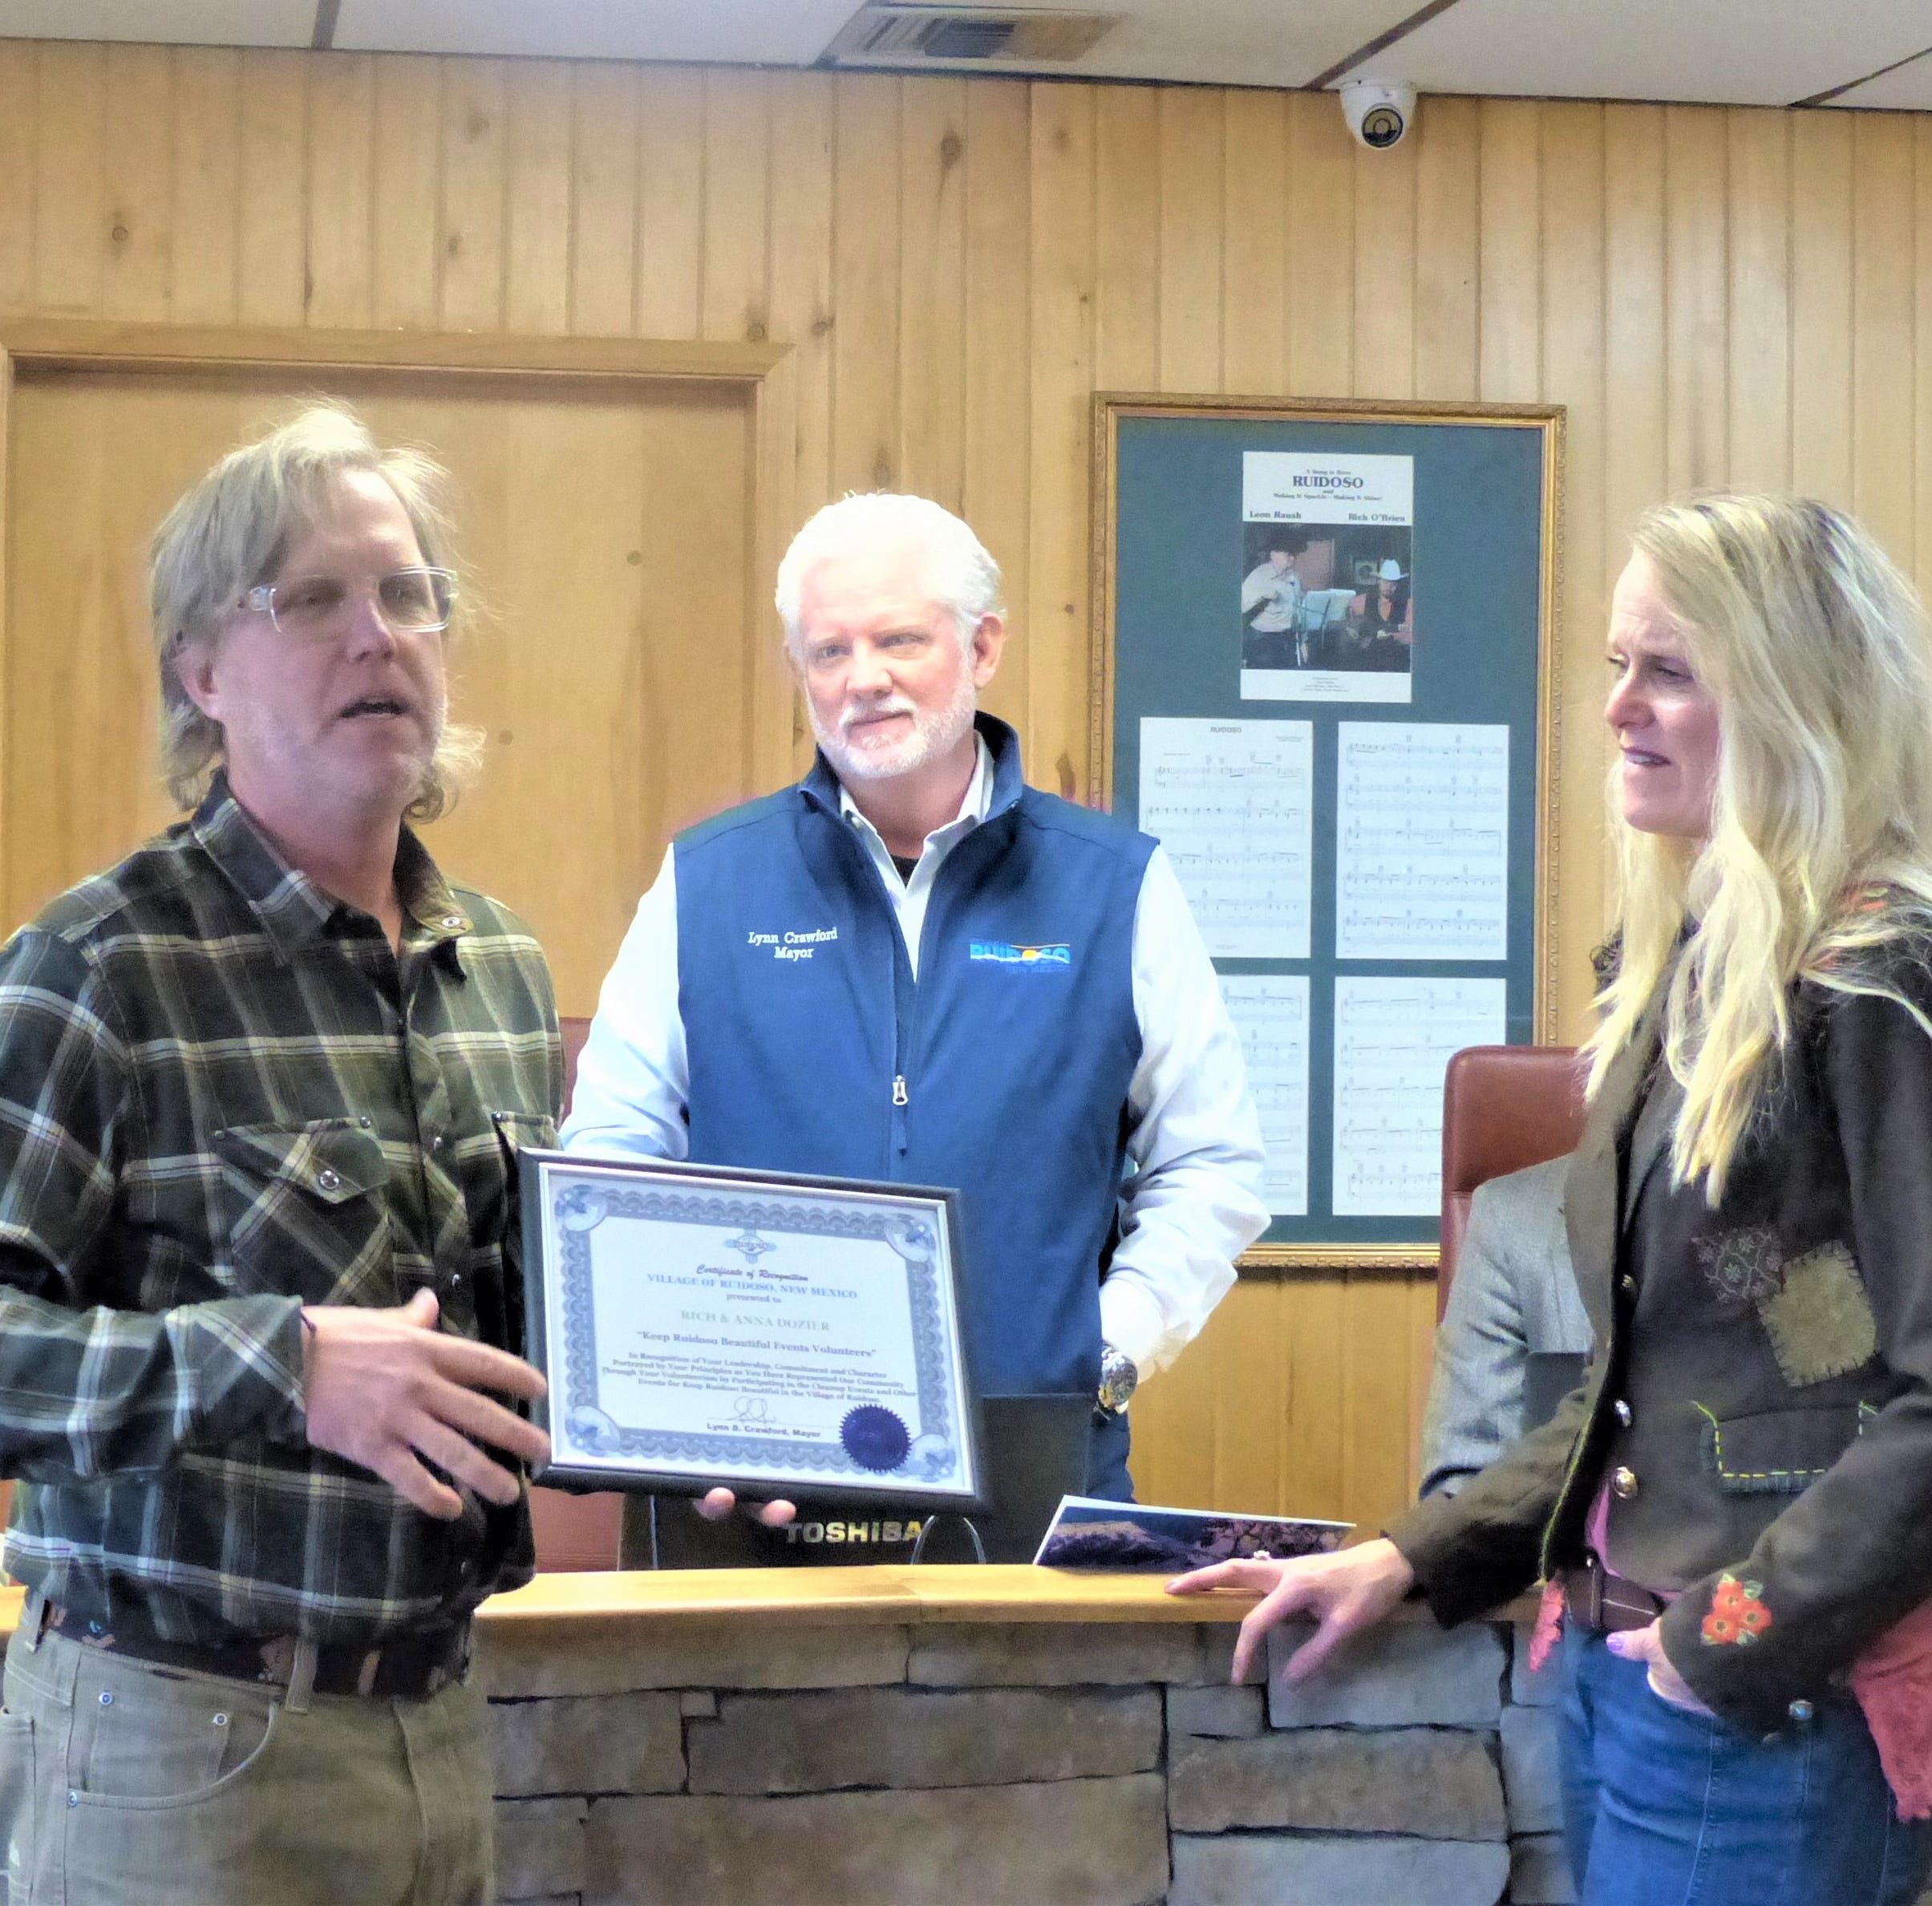 Rich and Anna Dozier recognized by Ruidoso Village Council